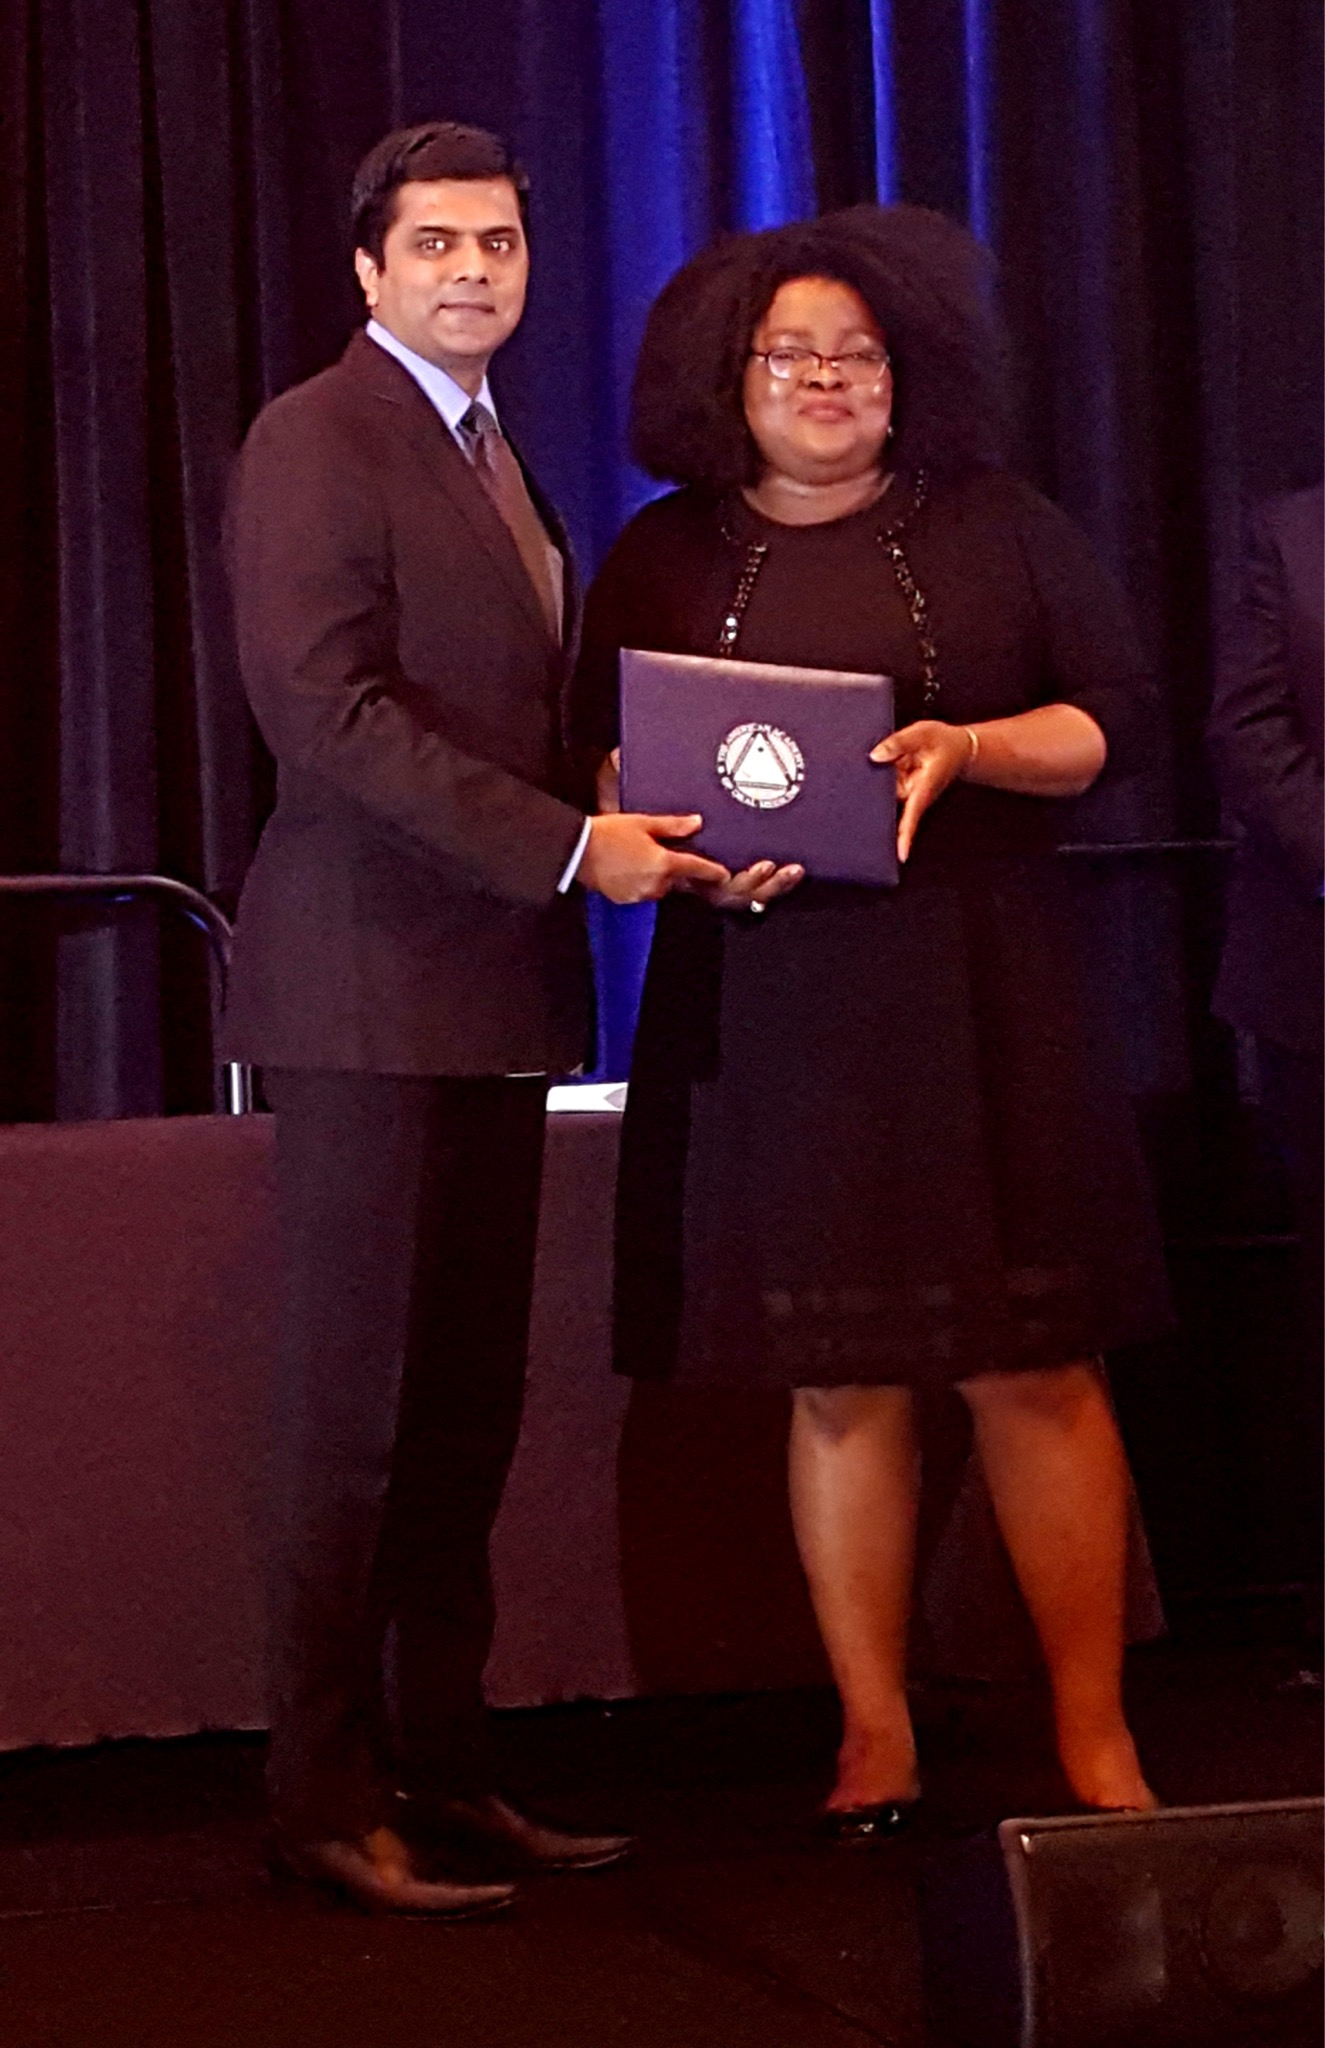 Dr.Arvind Muthukrishnan getting the certificate and medal for passing the academic fellowship exam conducted by American Academy of oral medicine. The fellowship was awarded at San Antonio in Texas in 2018